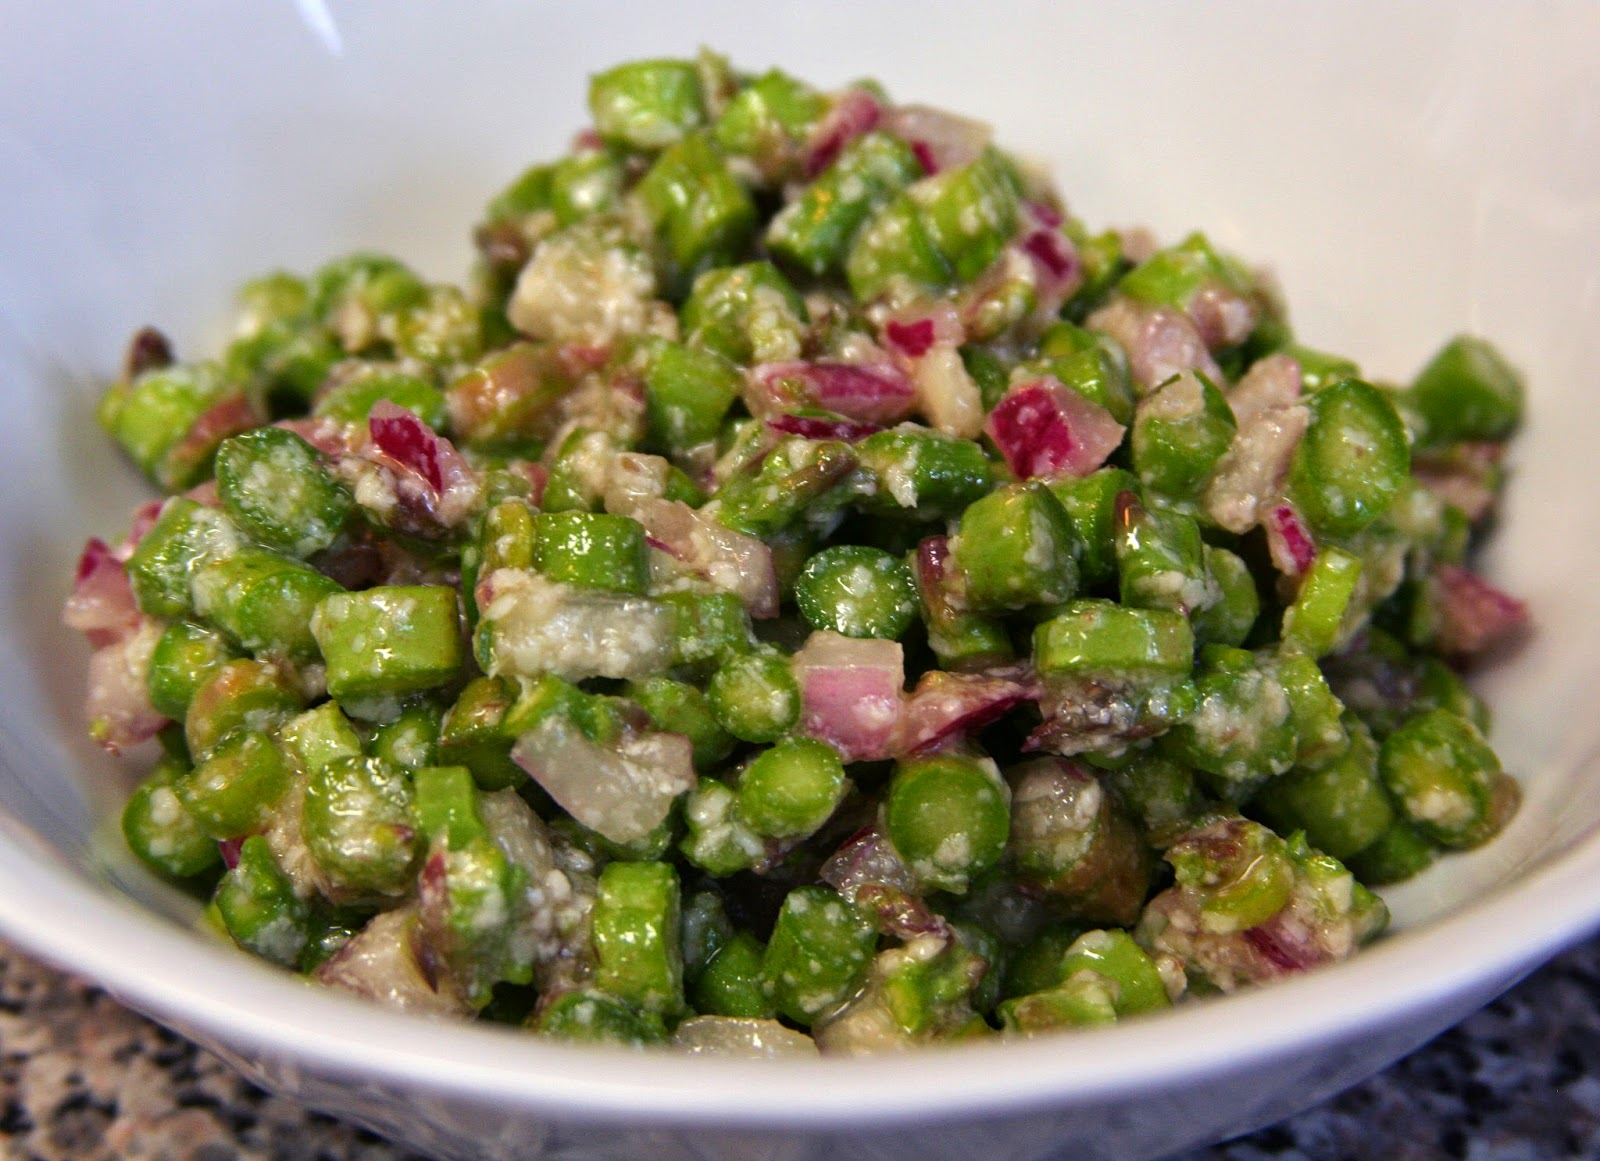 ... Confused: Anne Burrell: Asparagus, Pecorino, and Red Onion Salad